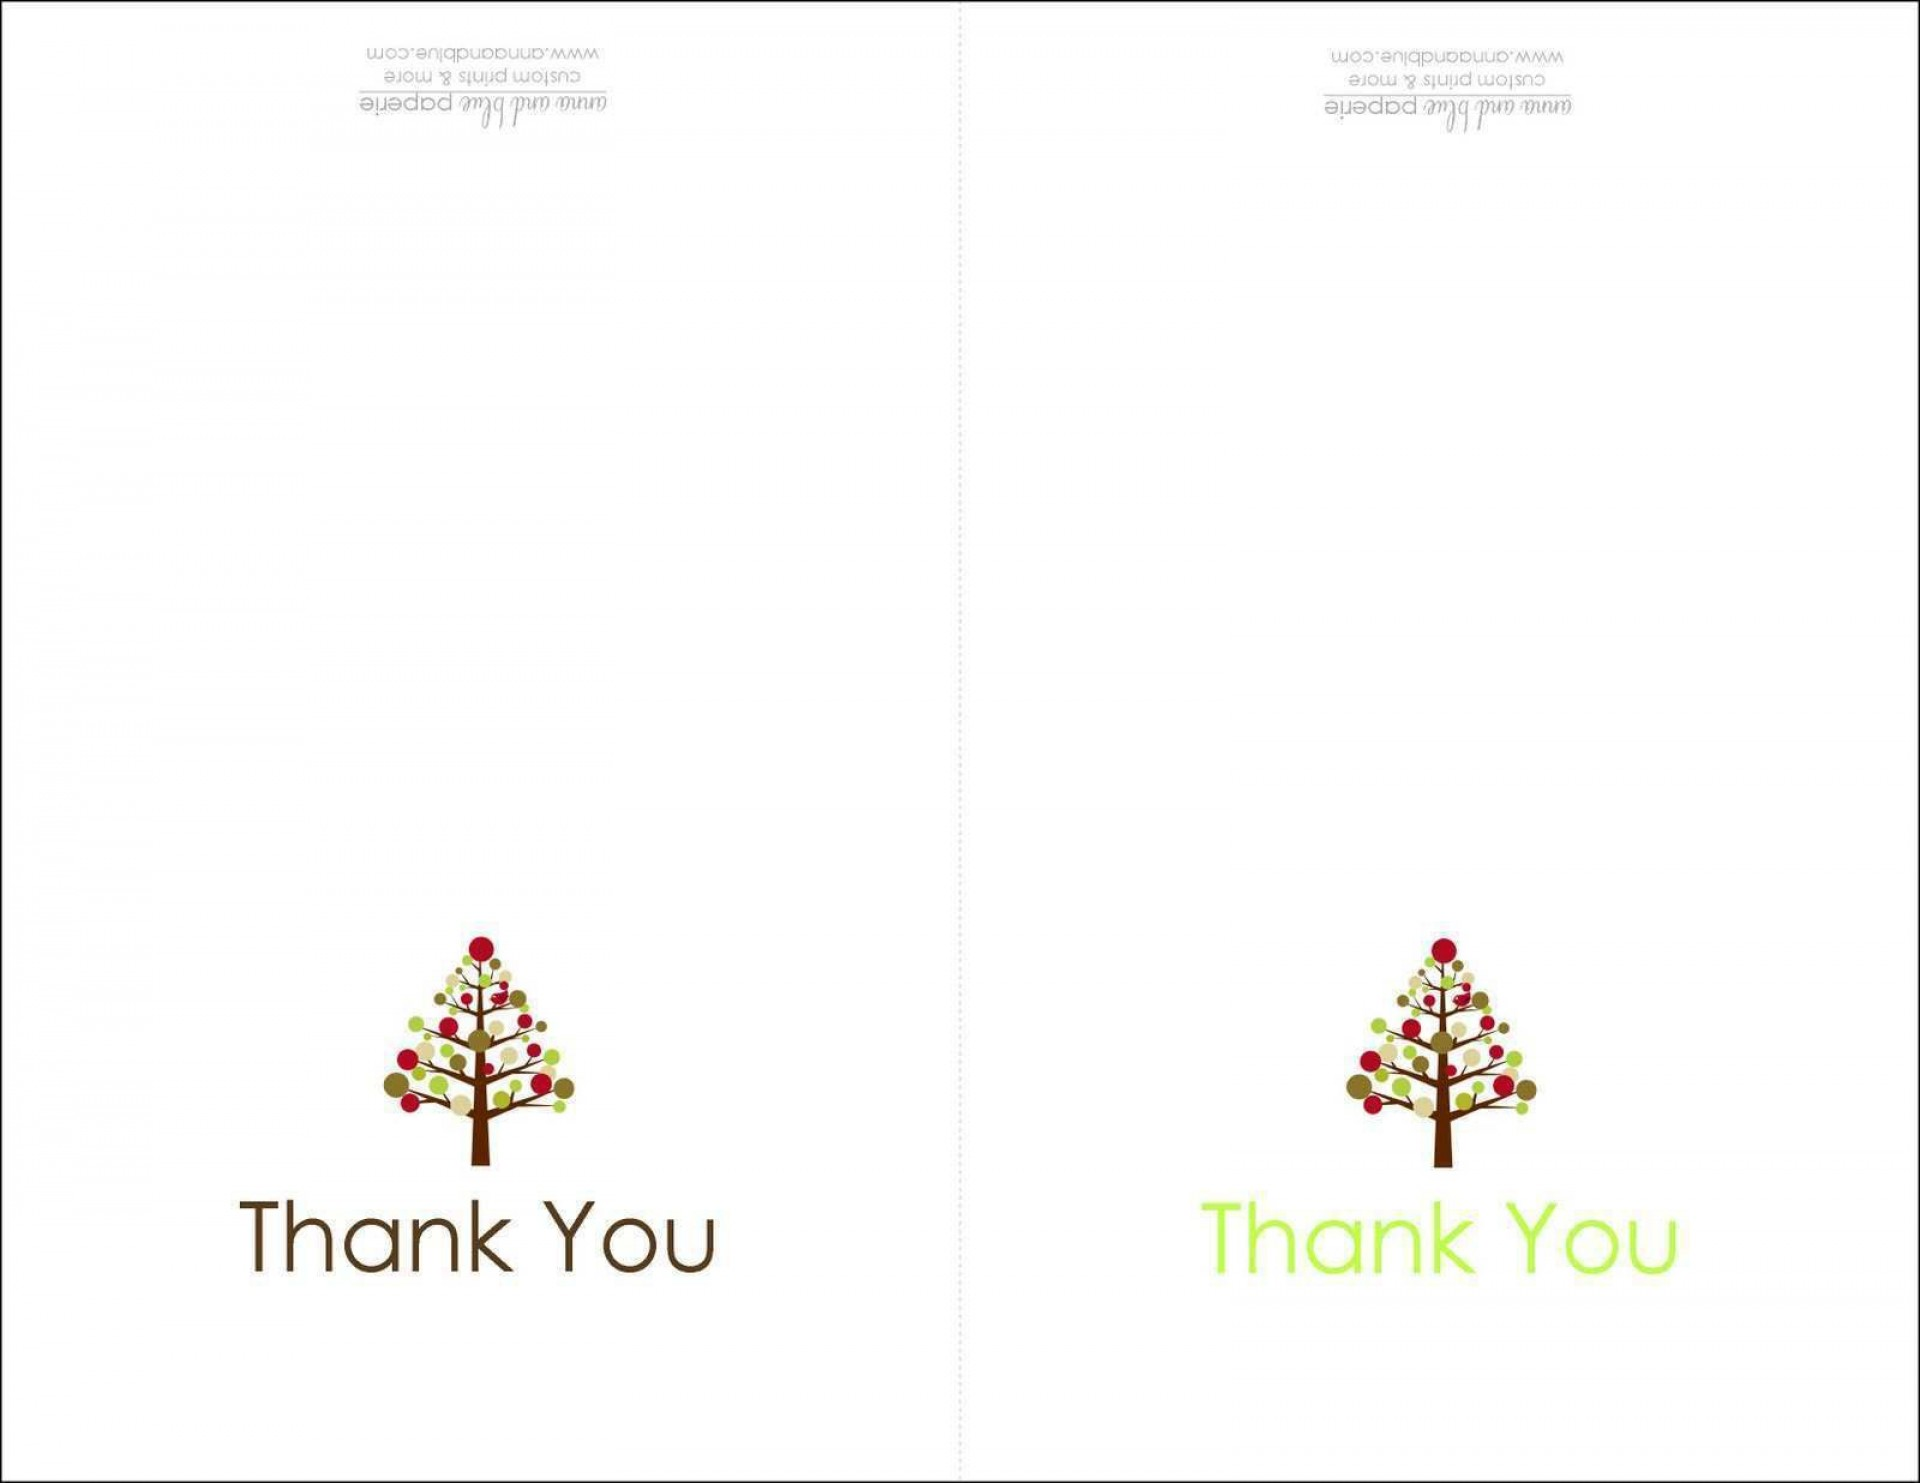 004 Dreaded Thank You Note Card Template Word Photo 1920